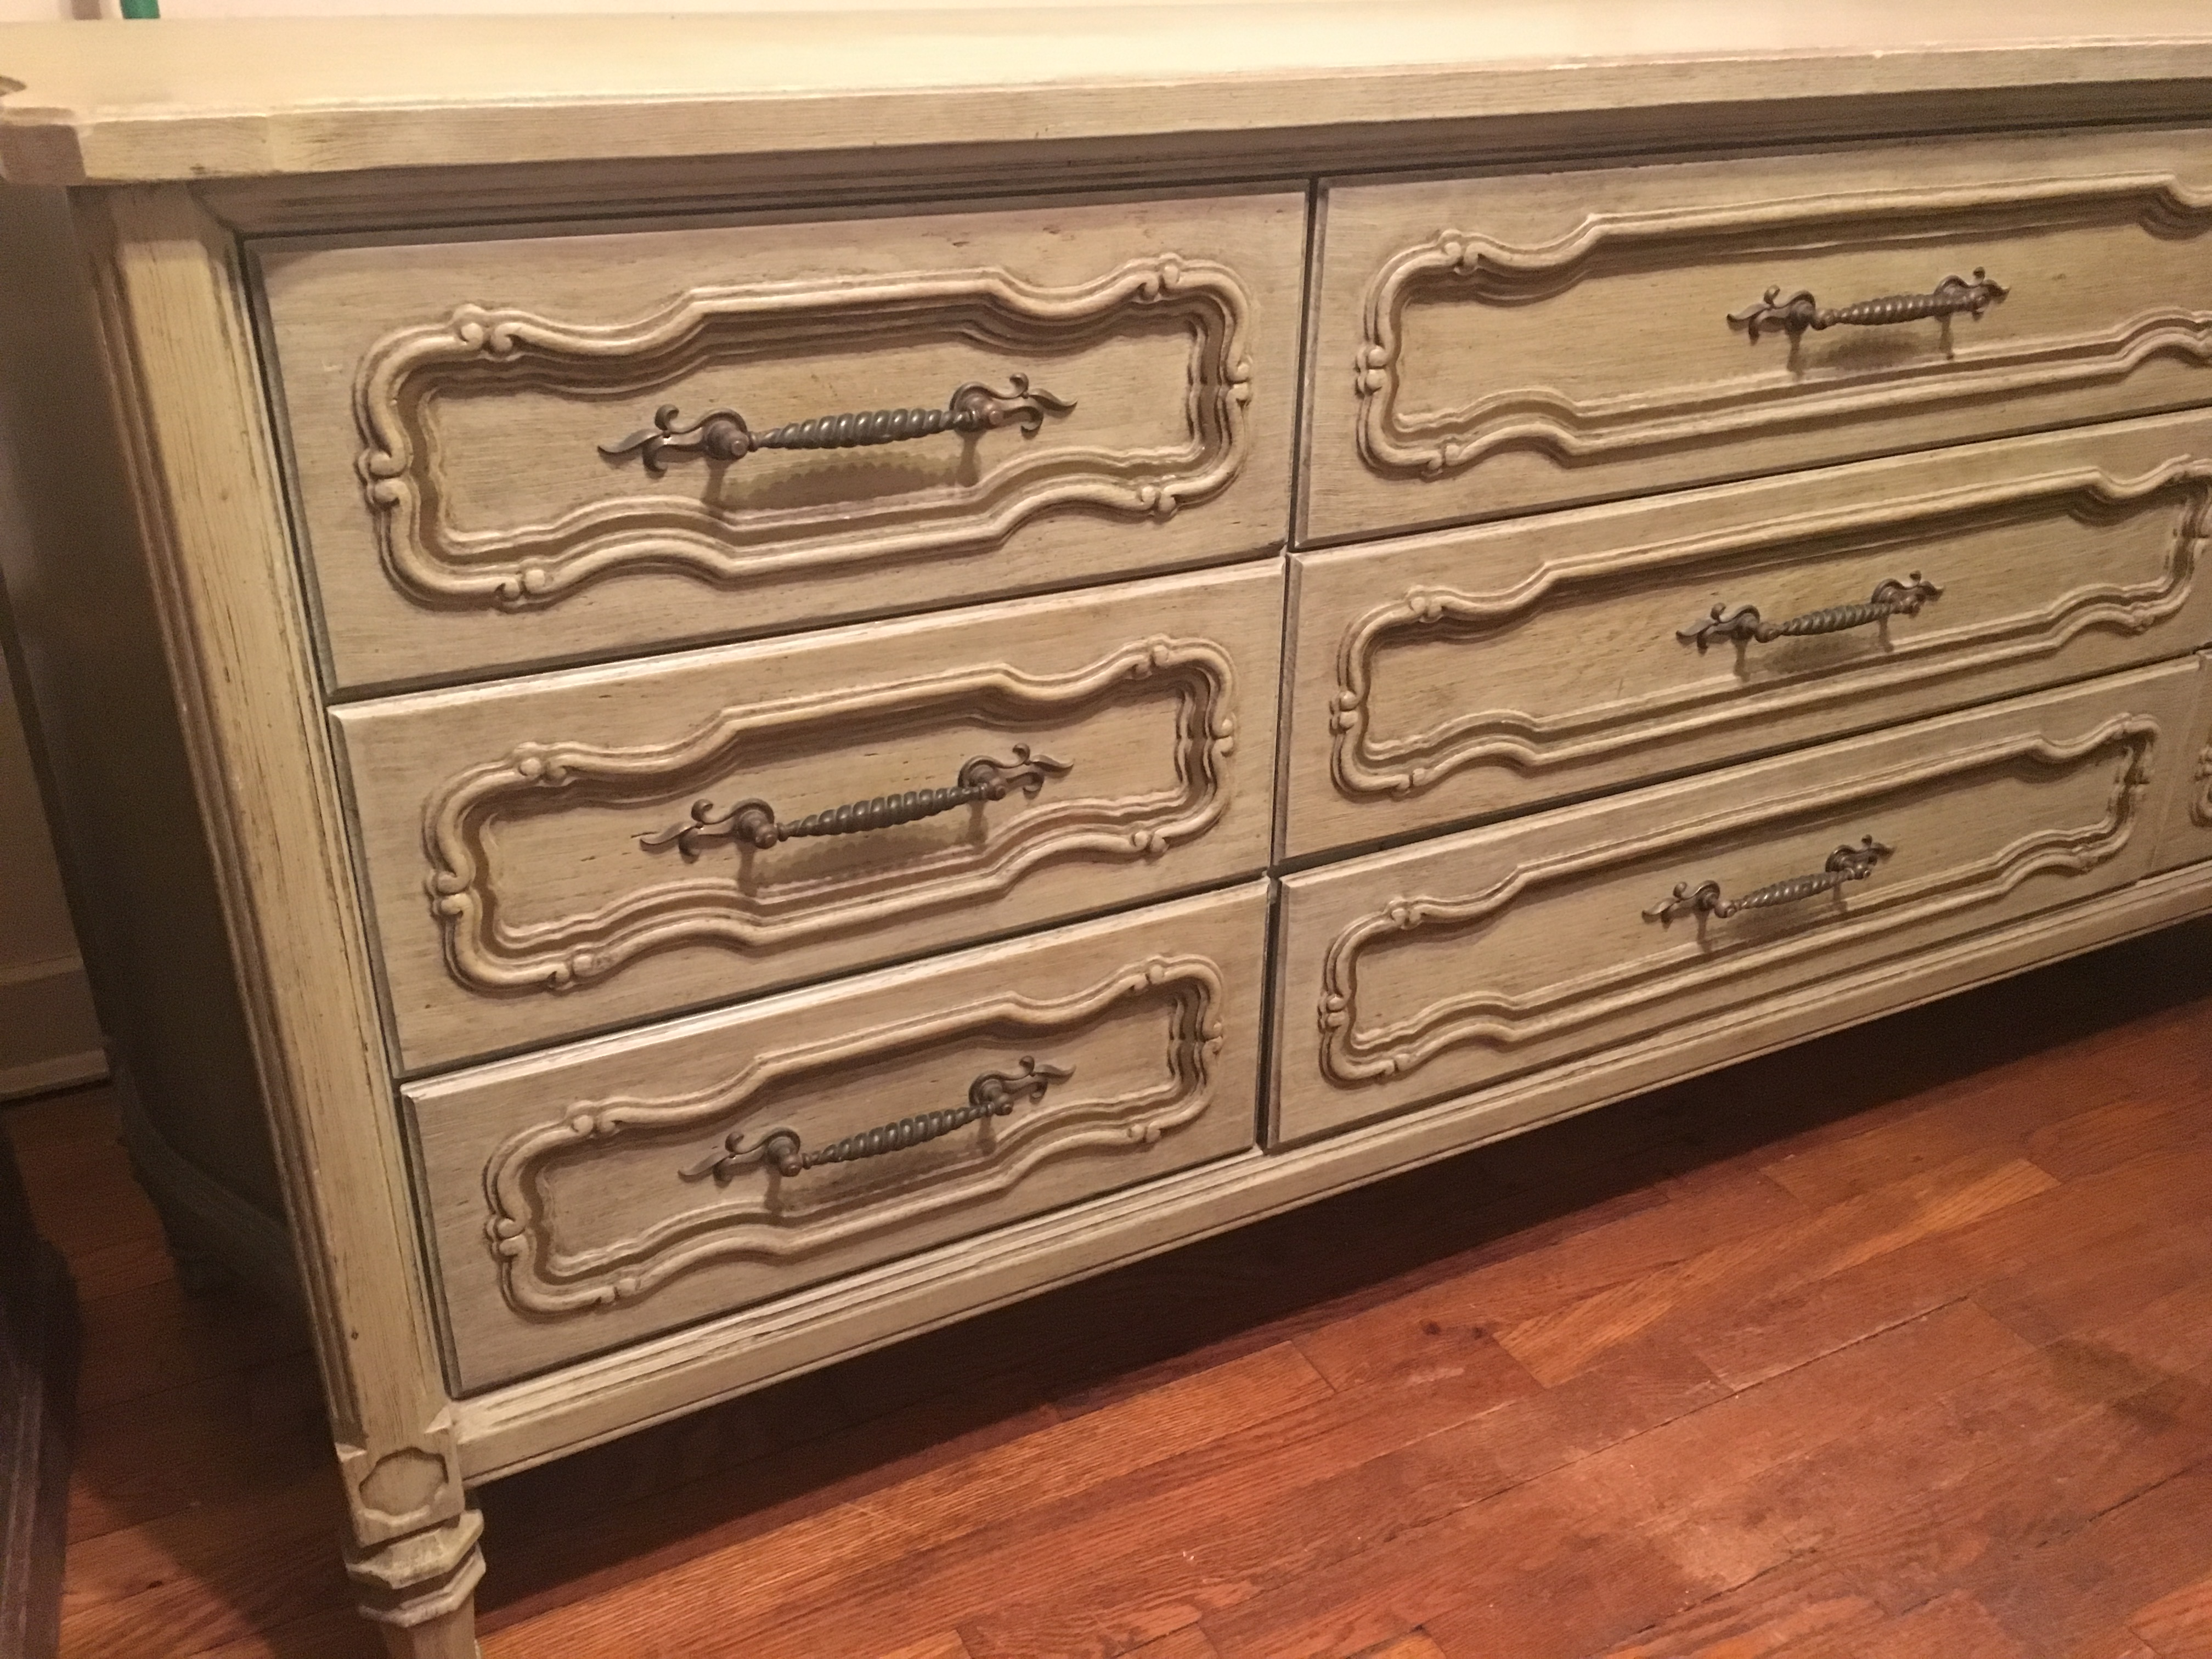 I Have Some Vanleigh Furniture That I Can T Find Anywhere Online I Have A 9 Drawer Dresser 3x3 That Came With A